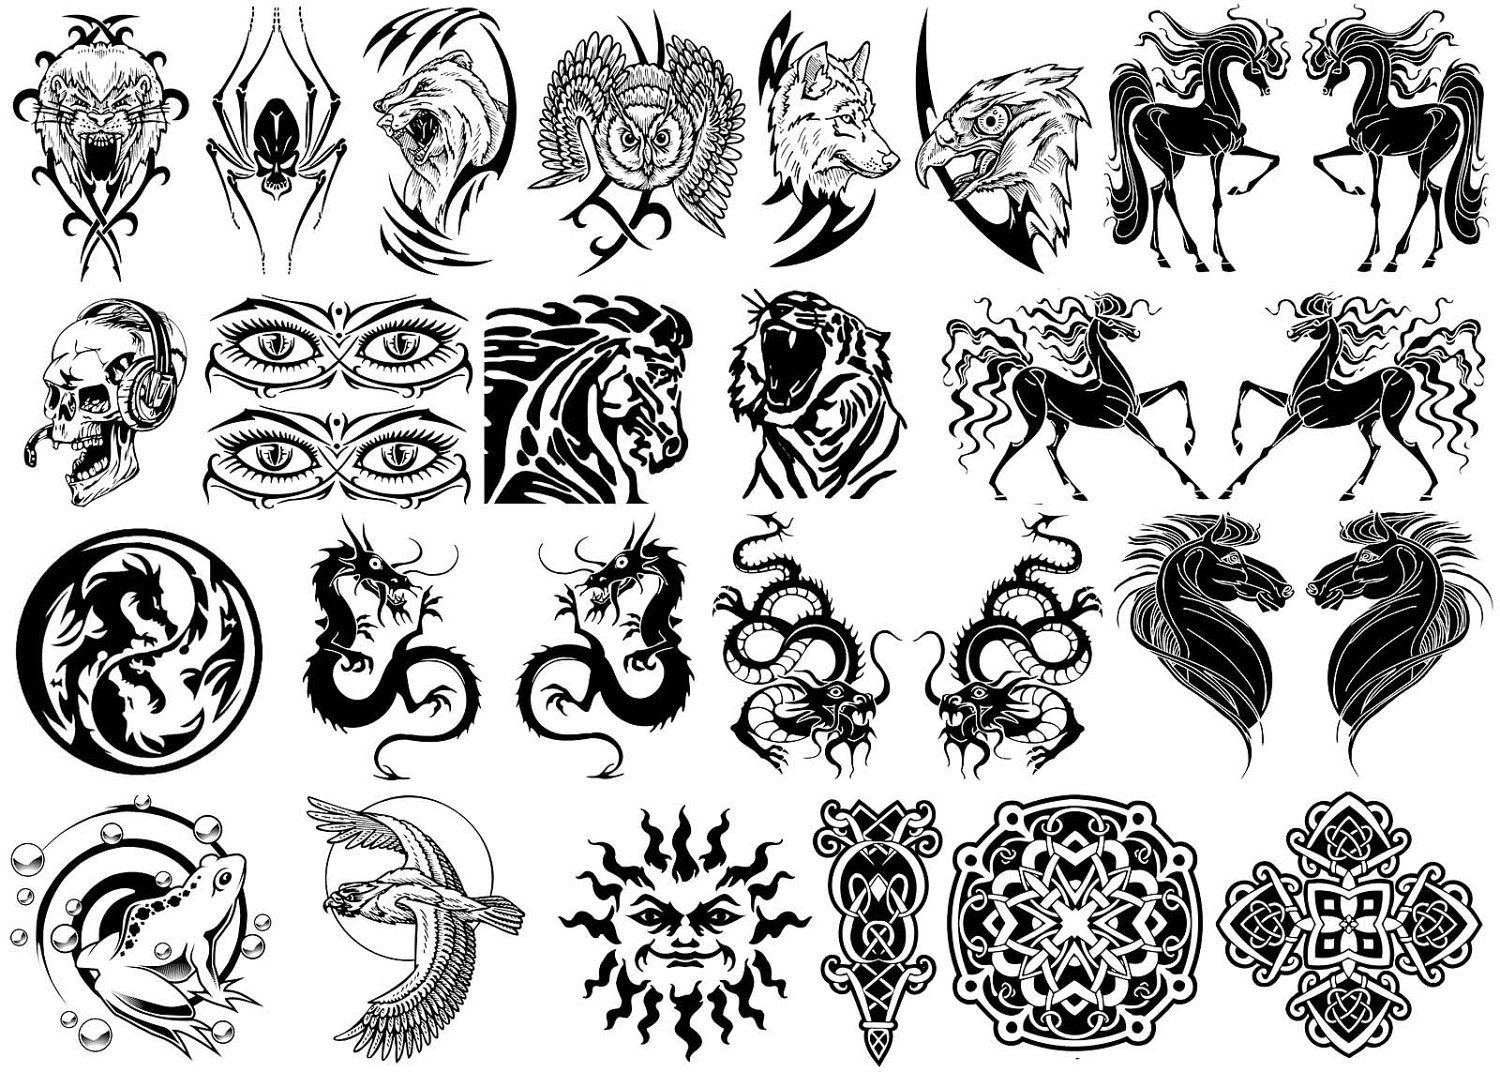 Chinese symbols dragon image collections symbol and sign ideas picture of chinese dragon tribal tattoo google search dragon kanji chinese symbols tattoos collection for men biocorpaavc Gallery